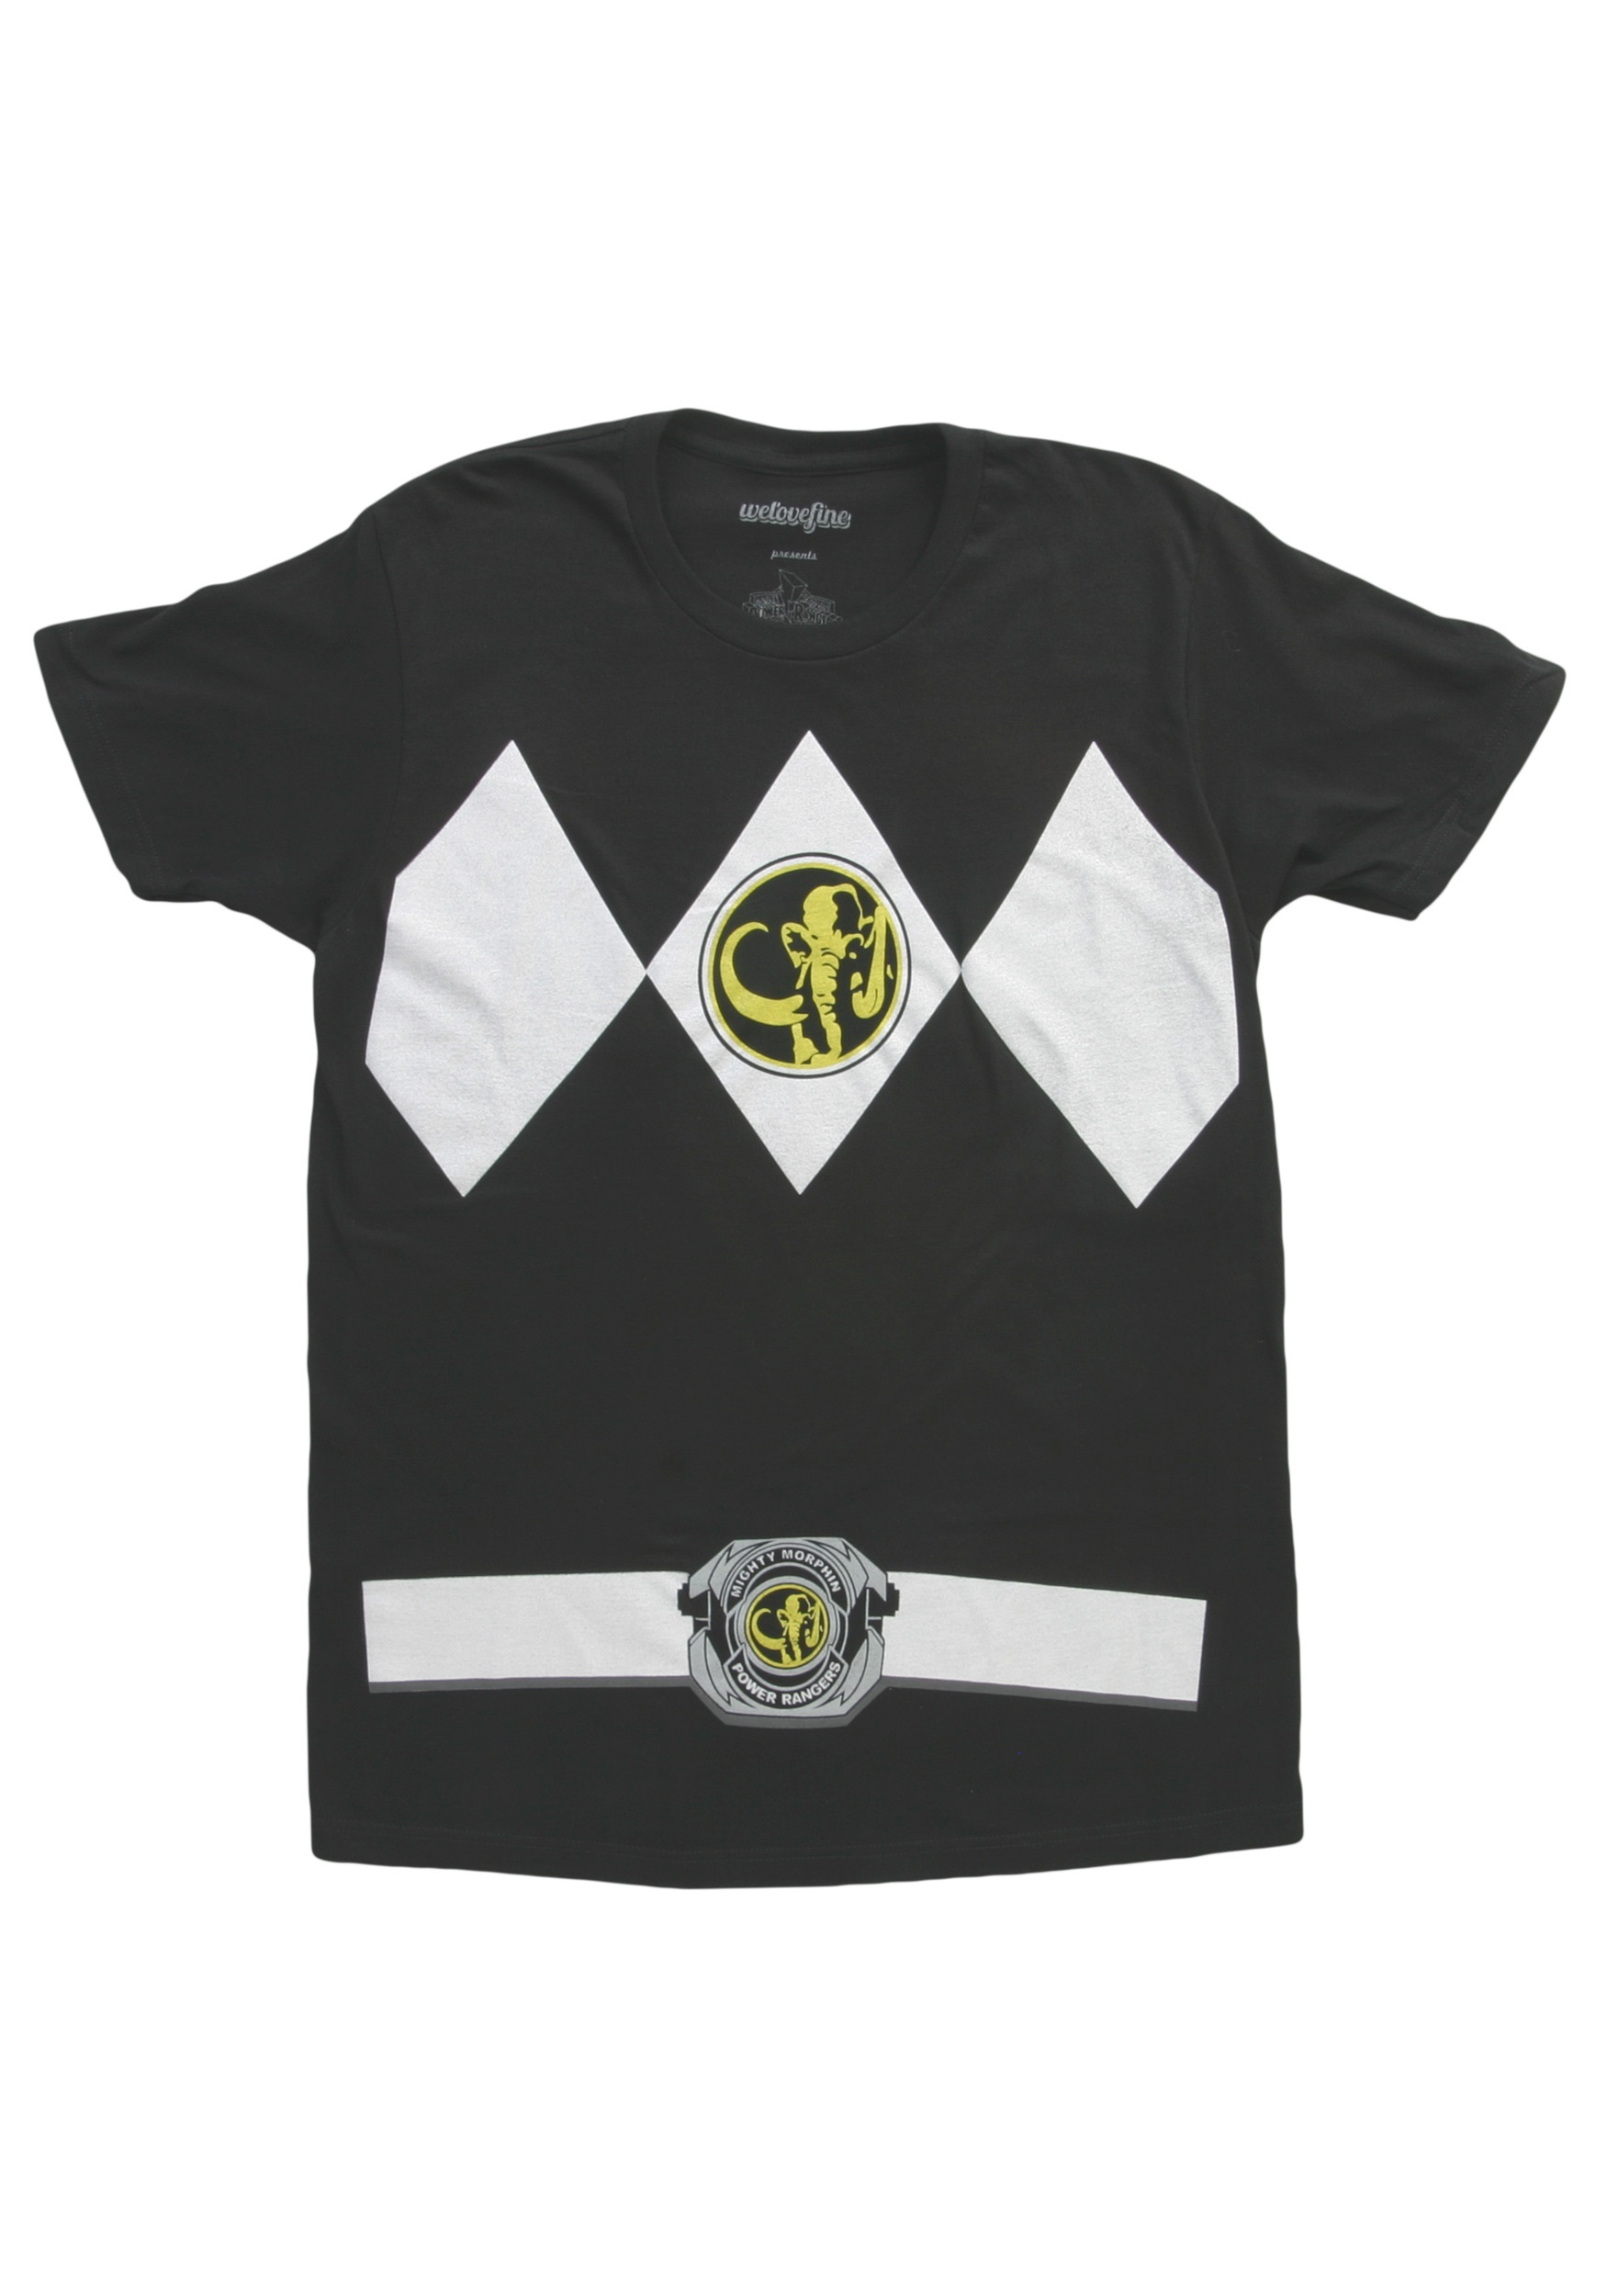 Black Power Ranger T-Shirt